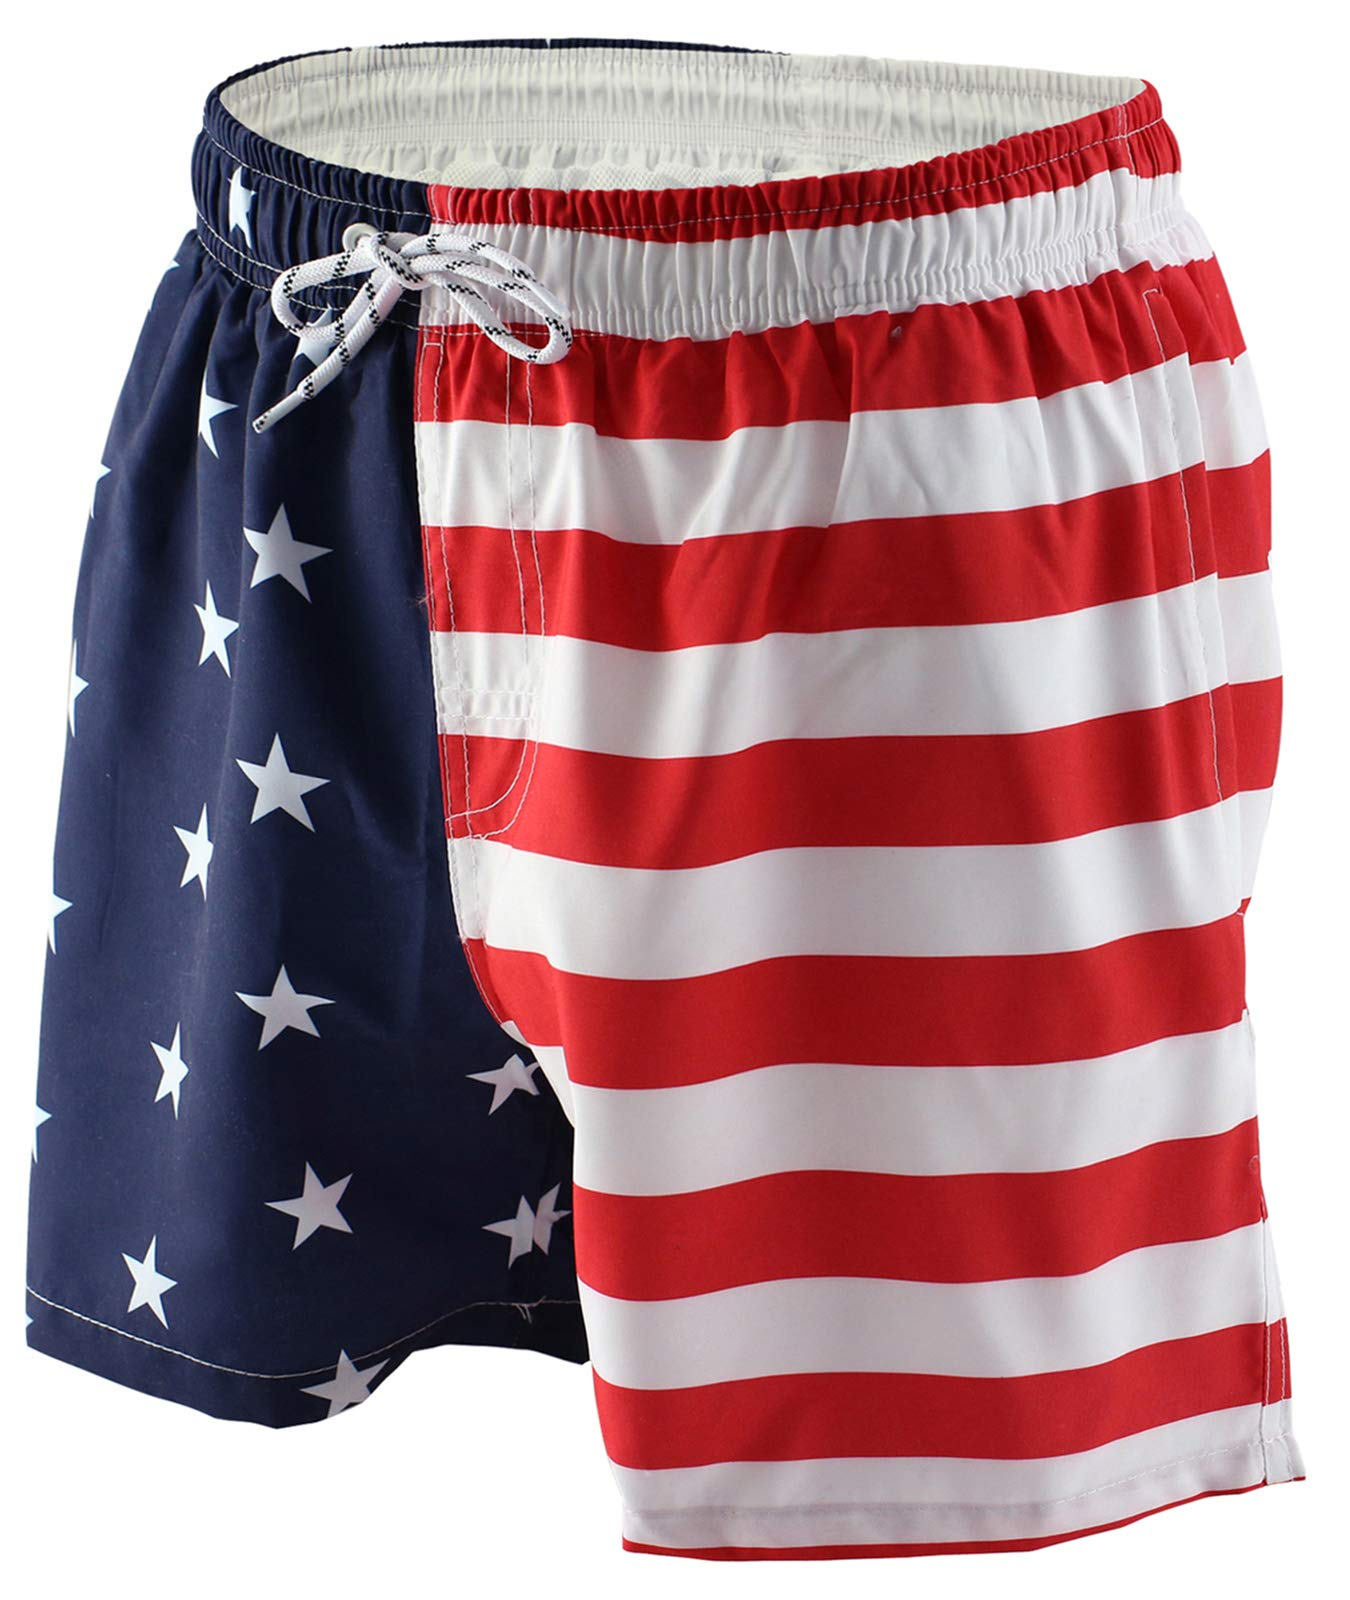 Tyhengta Mens American Flag Swim Trunks Quick Dry Bathing Suits Shorts Medium by Tyhengta